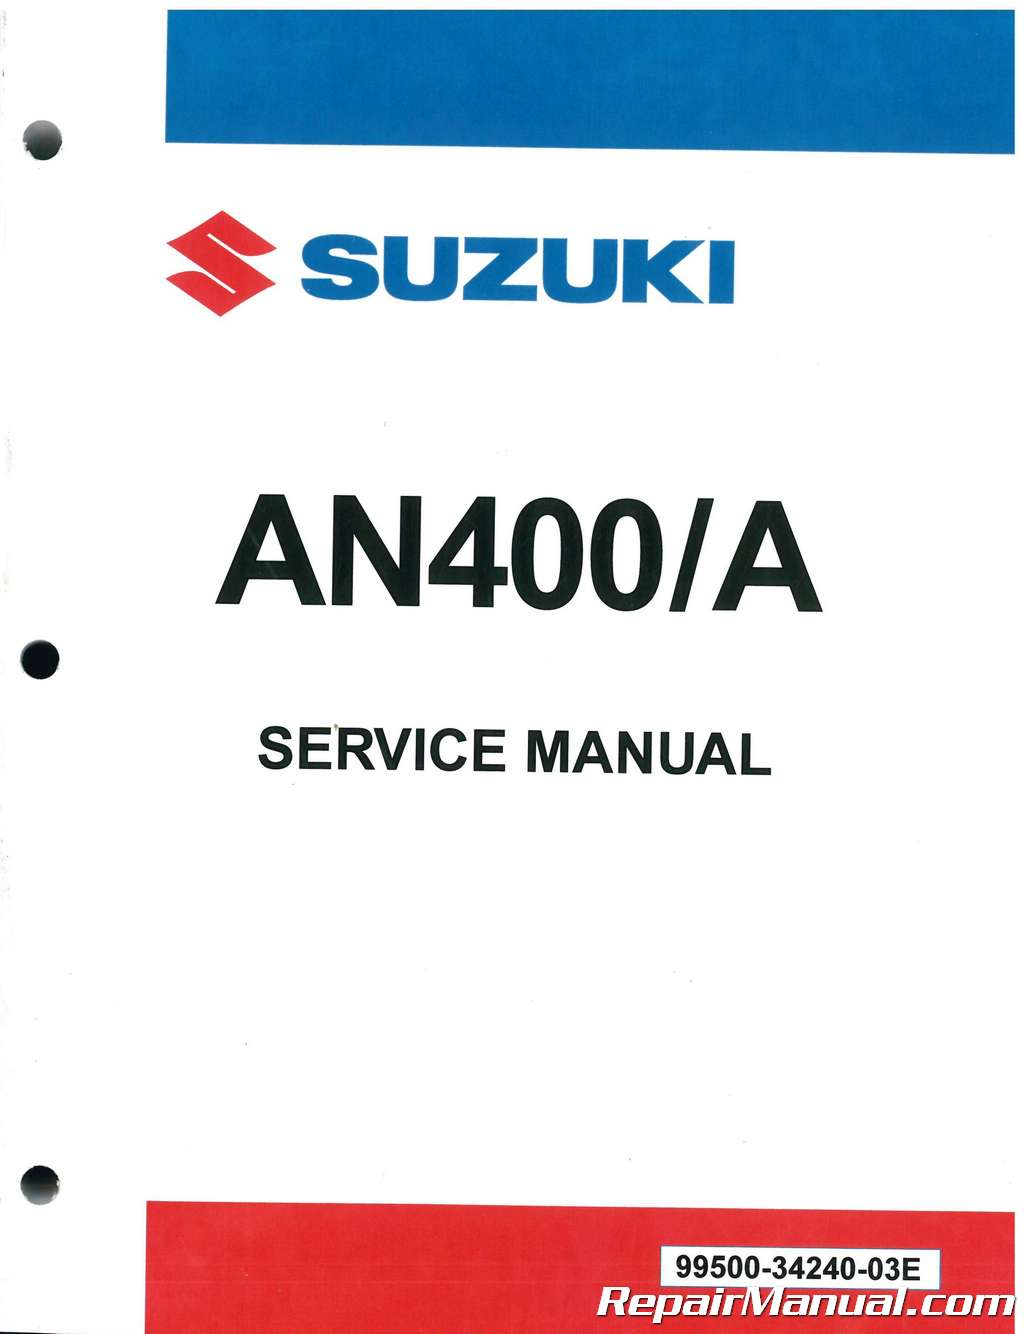 2018 suzuki an400 burgman scooter service manual rh repairmanual com suzuki burgman an 400 service manual suzuki burgman an 400 service manual